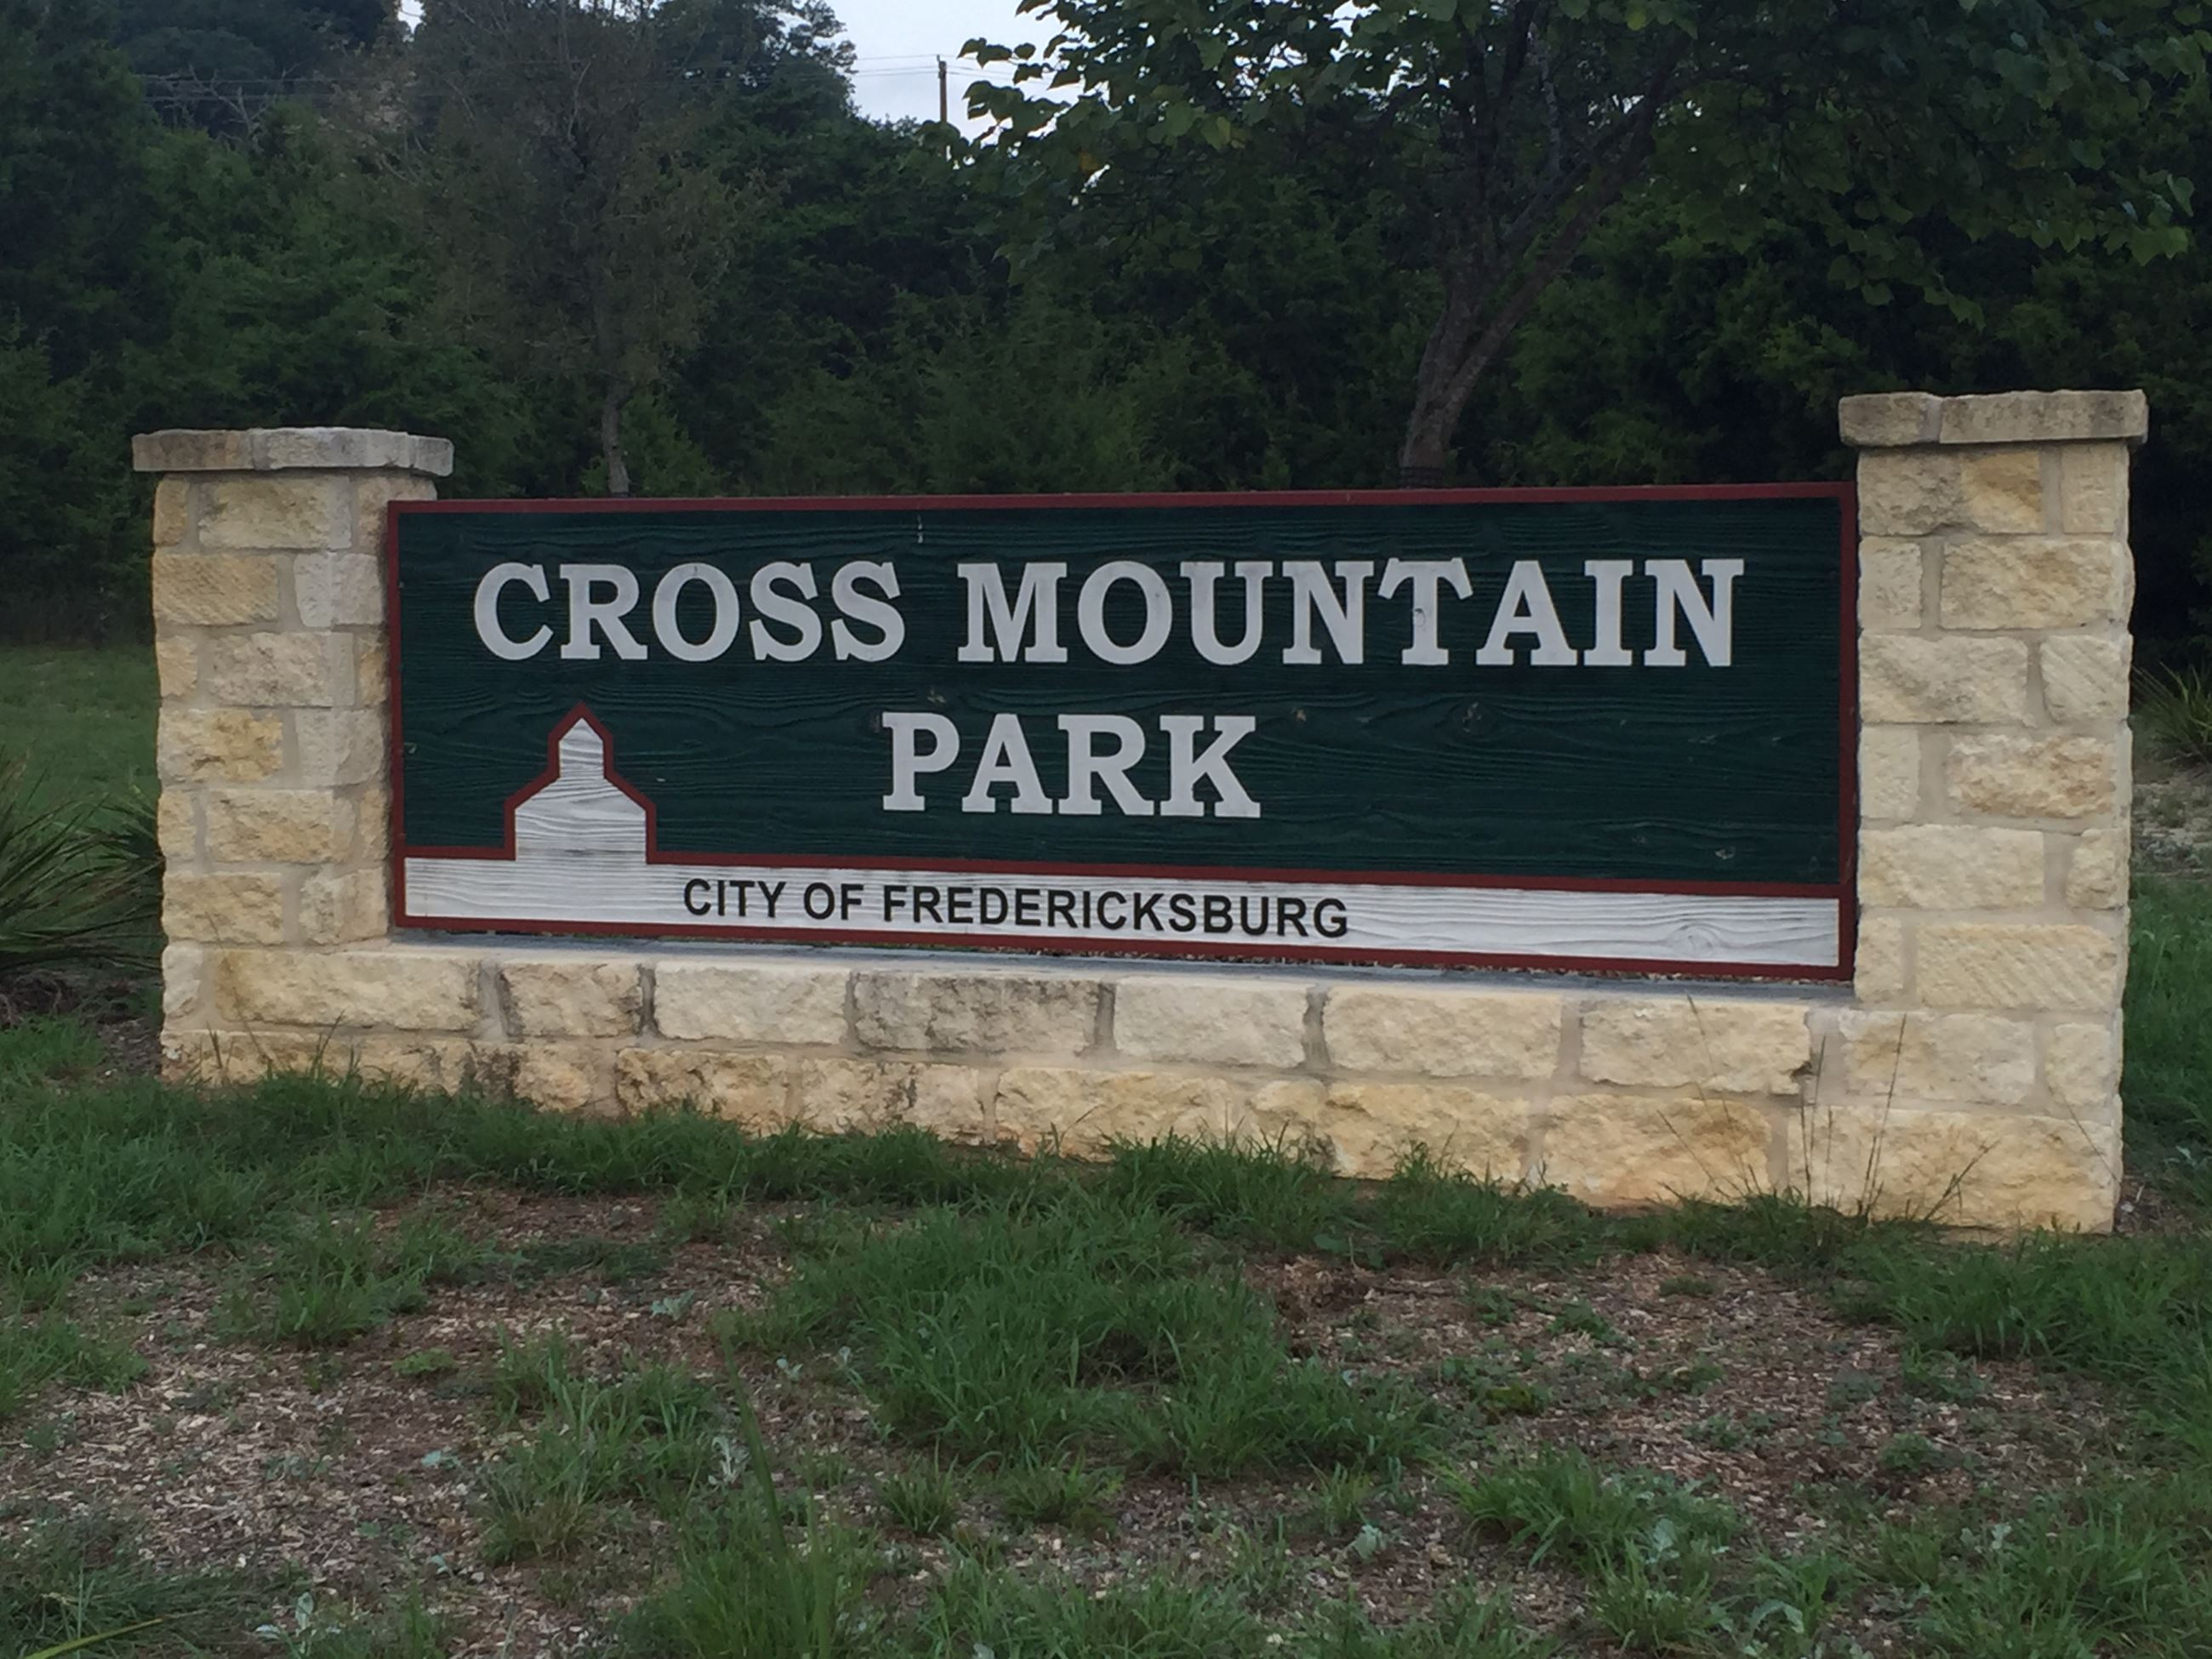 Cross Mountain Park entry sign